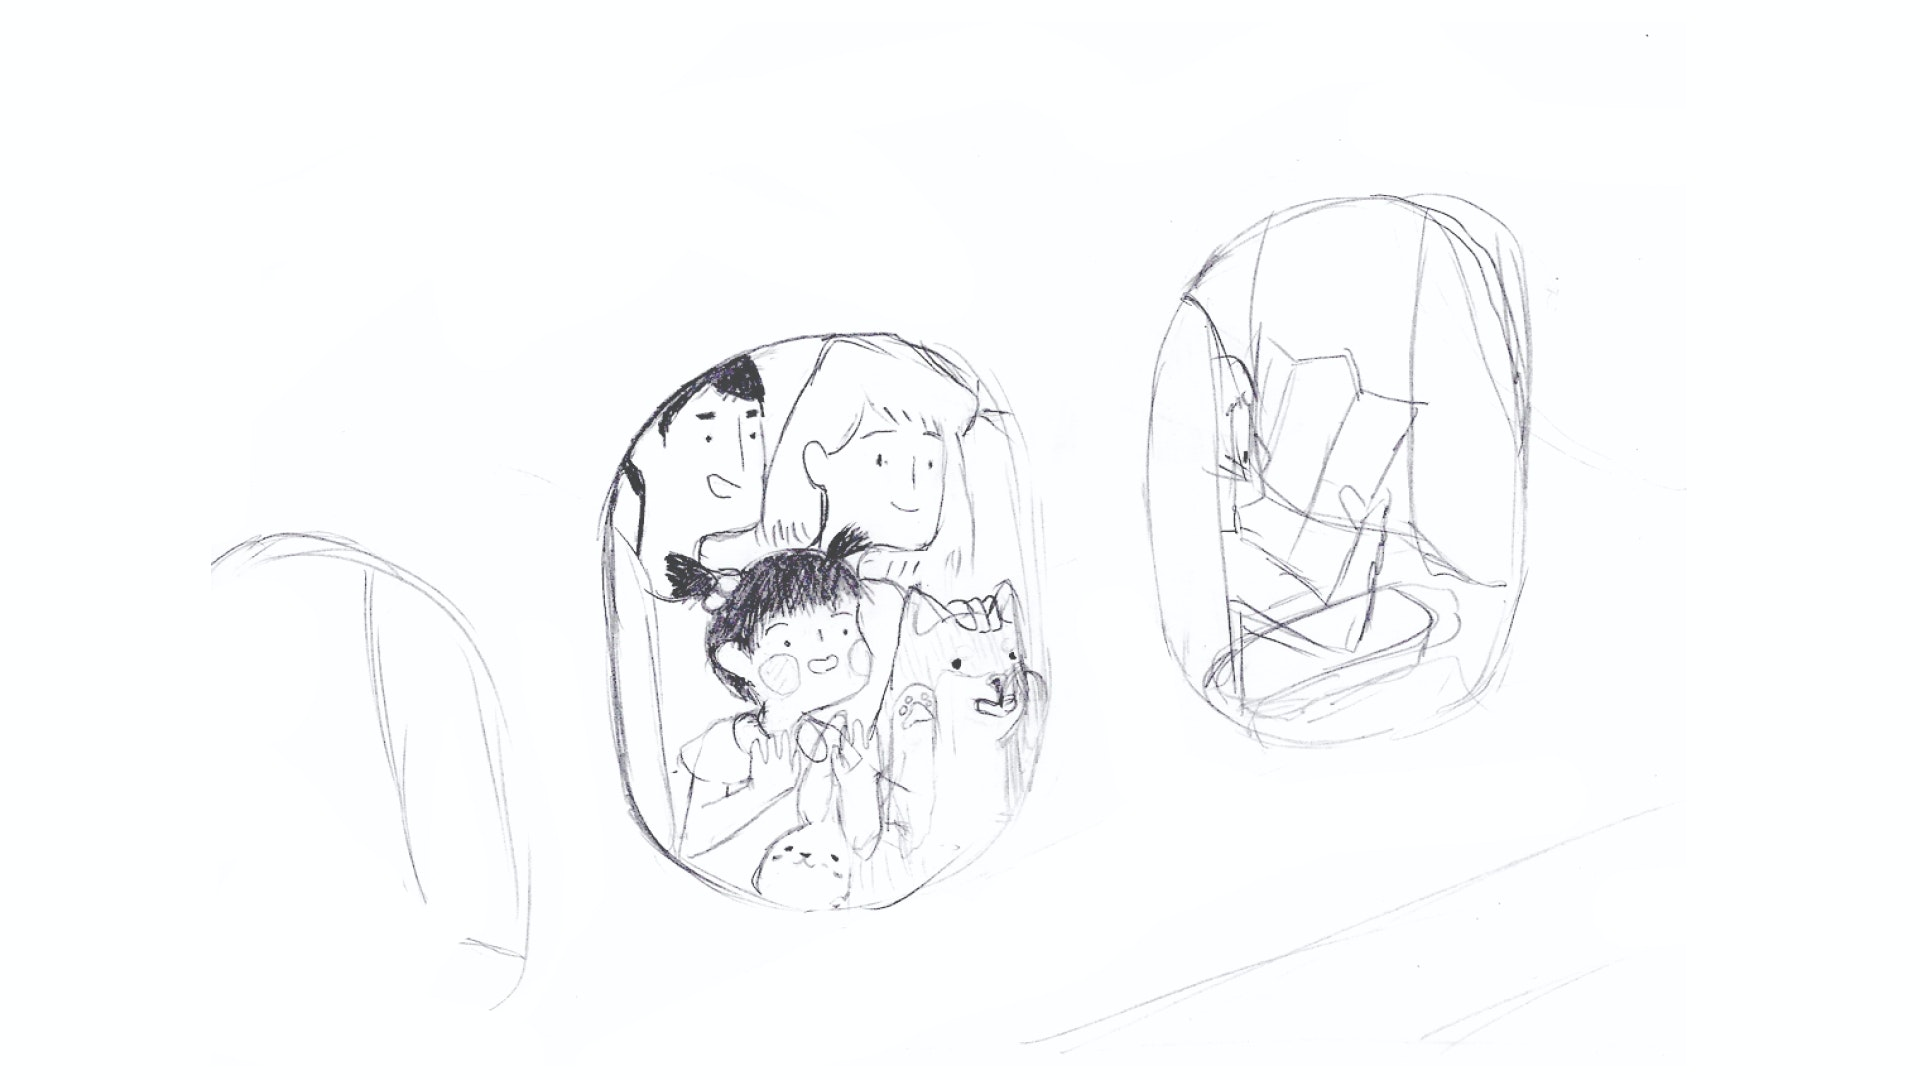 Drawing of a family looking out the window of the plane